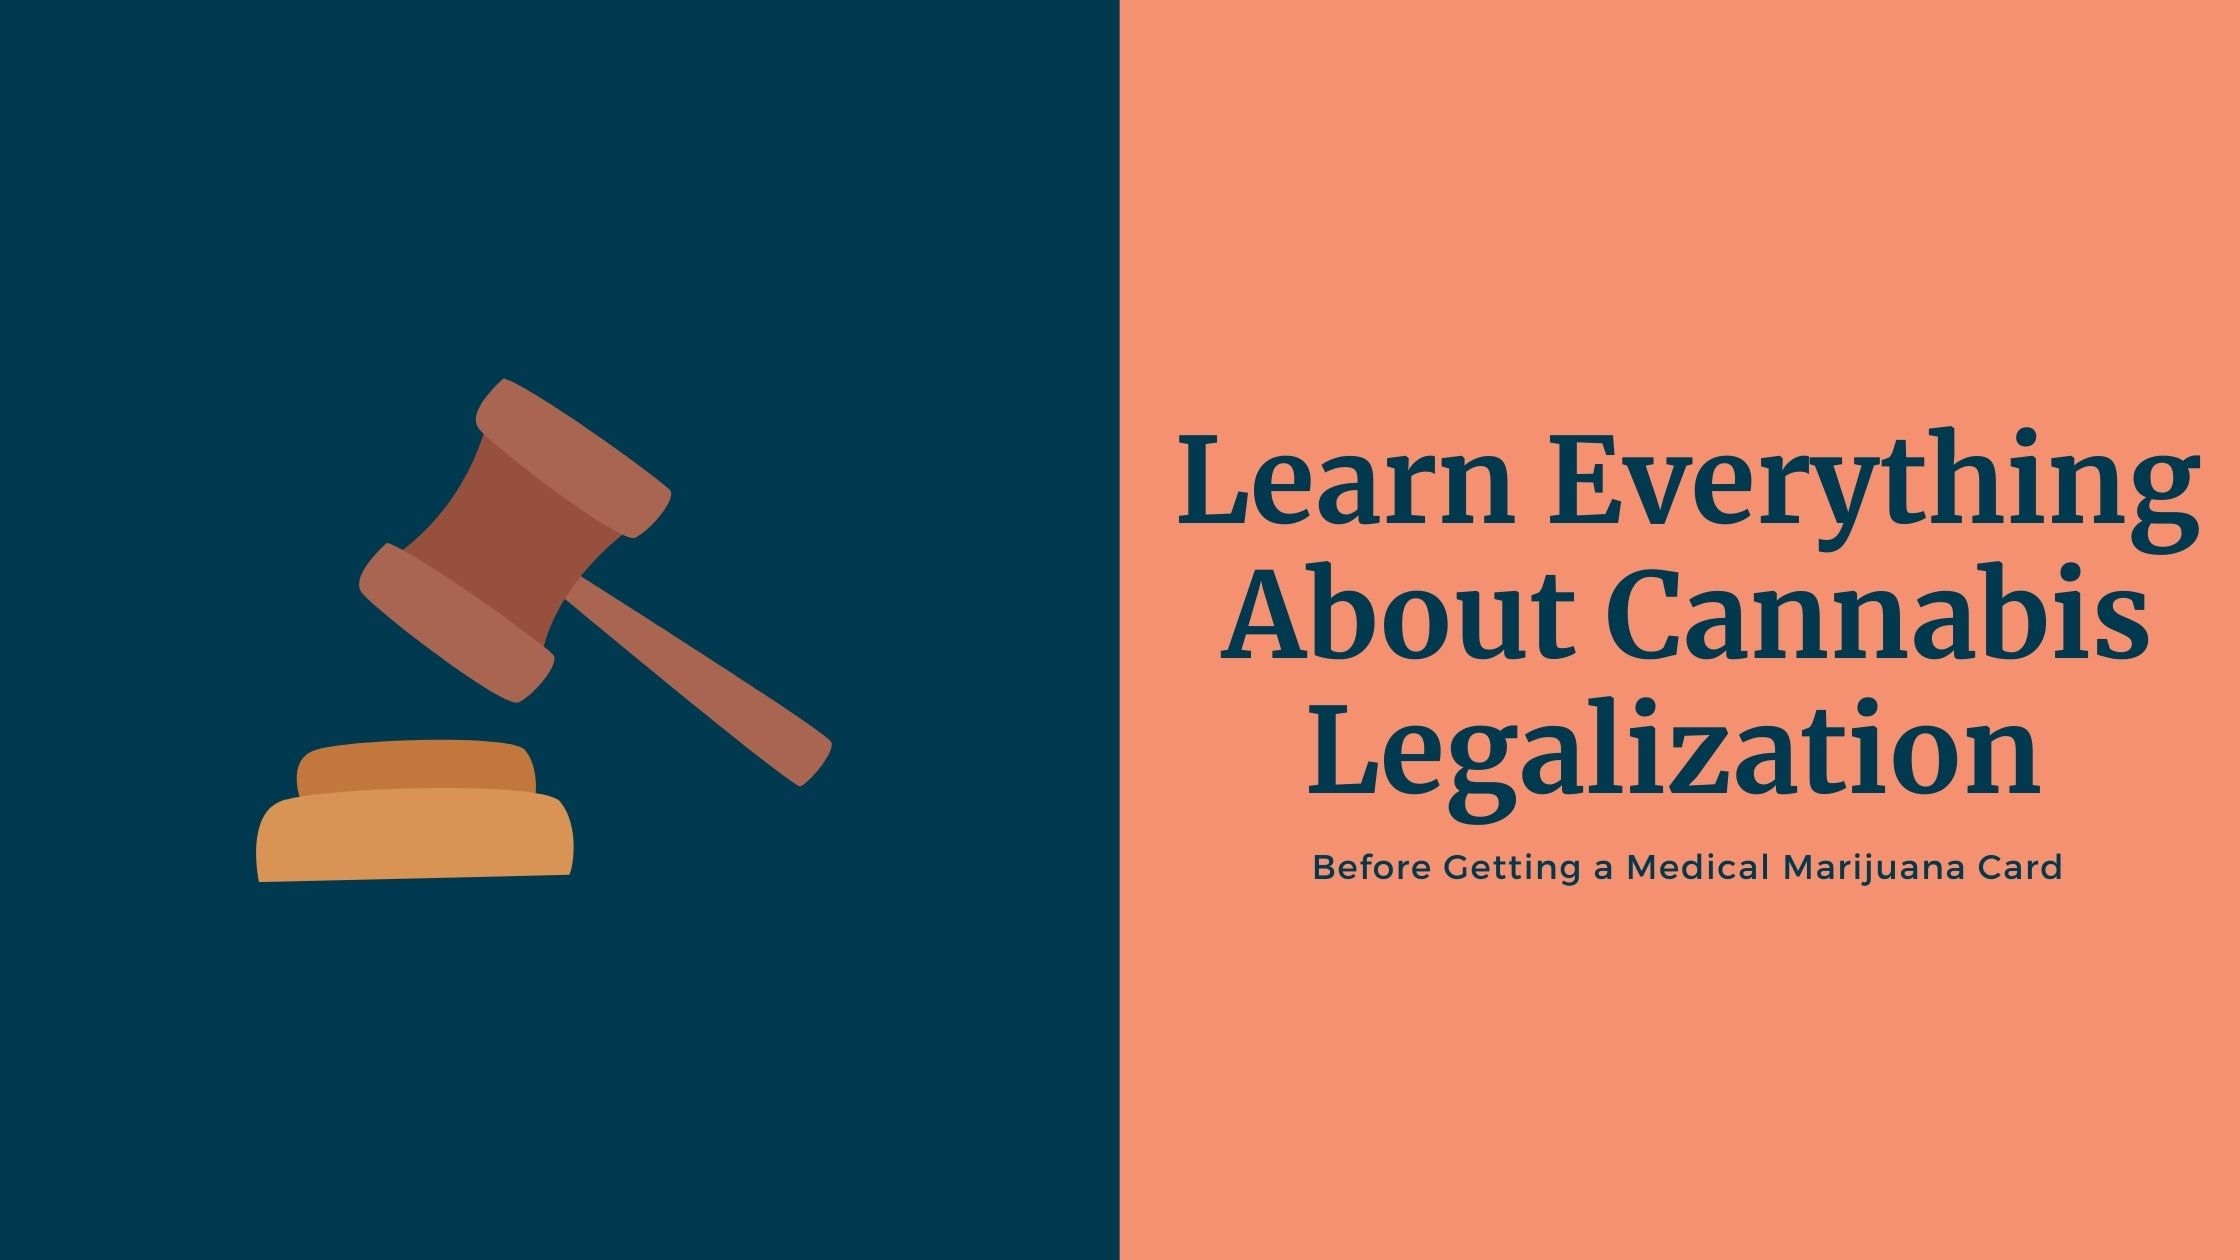 Learn Everything About Cannabis Legalization Before Getting a Medical Marijuana Card